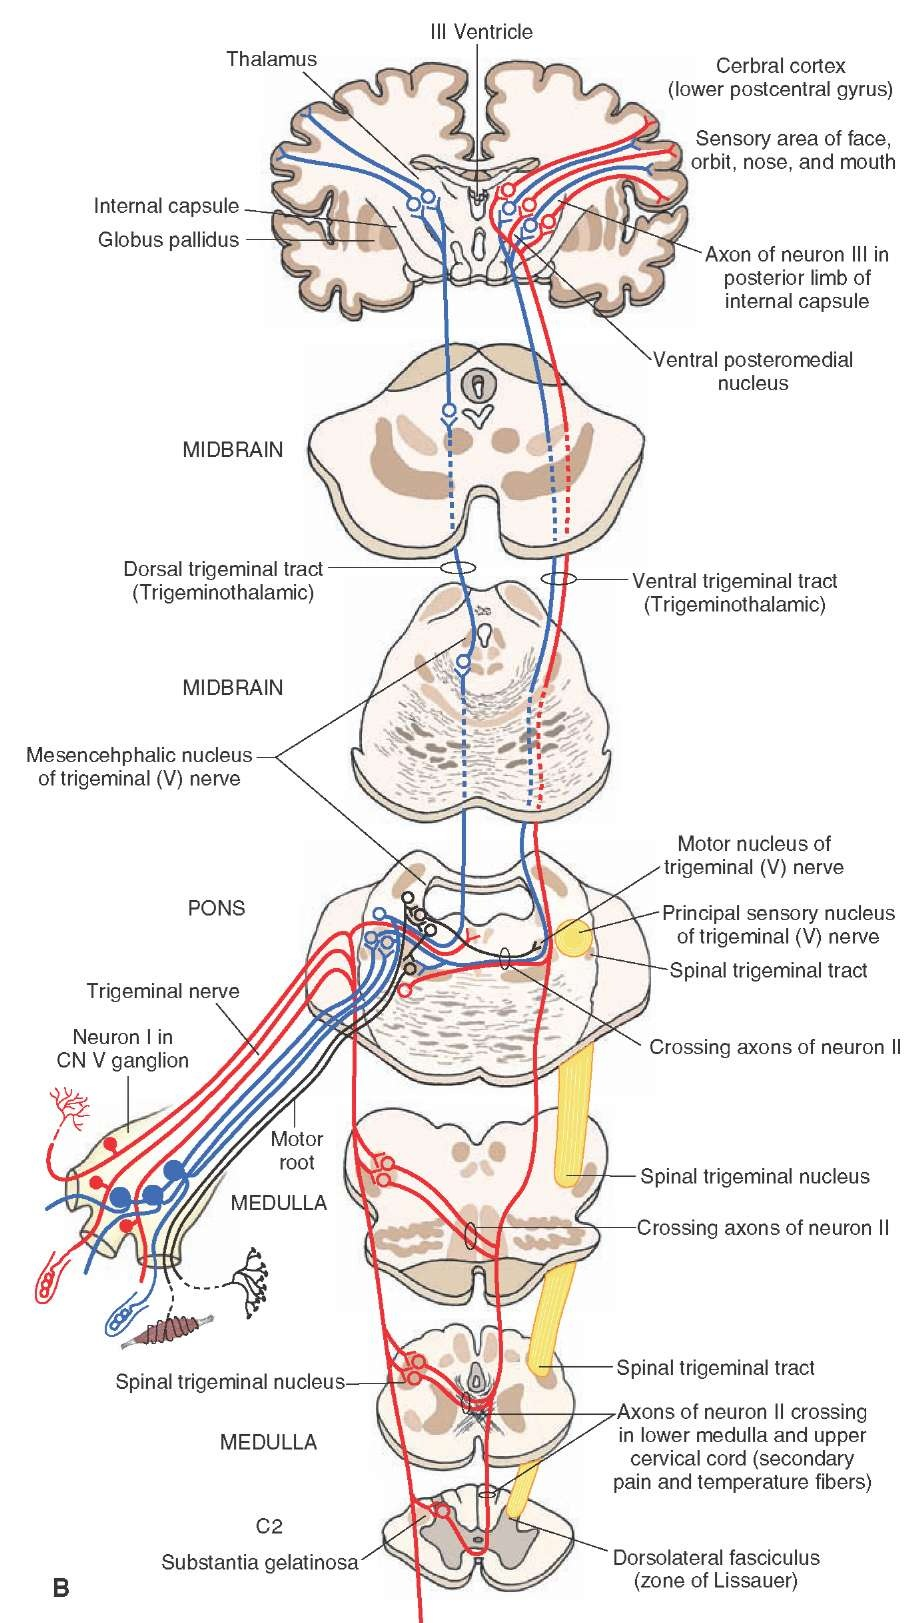 (B) Organization and distribution of the central trigeminal pathways from the periphery to the cerebral cortex. Fibers conveying pain and thermal sensations are indicated in red; fibers conveying tactile and pressure sensations are indicated in blue; the motor root is indicated in black on the left side of figure, and the ascending lateral spinothalamic tract is shown in black on the right side of figure.